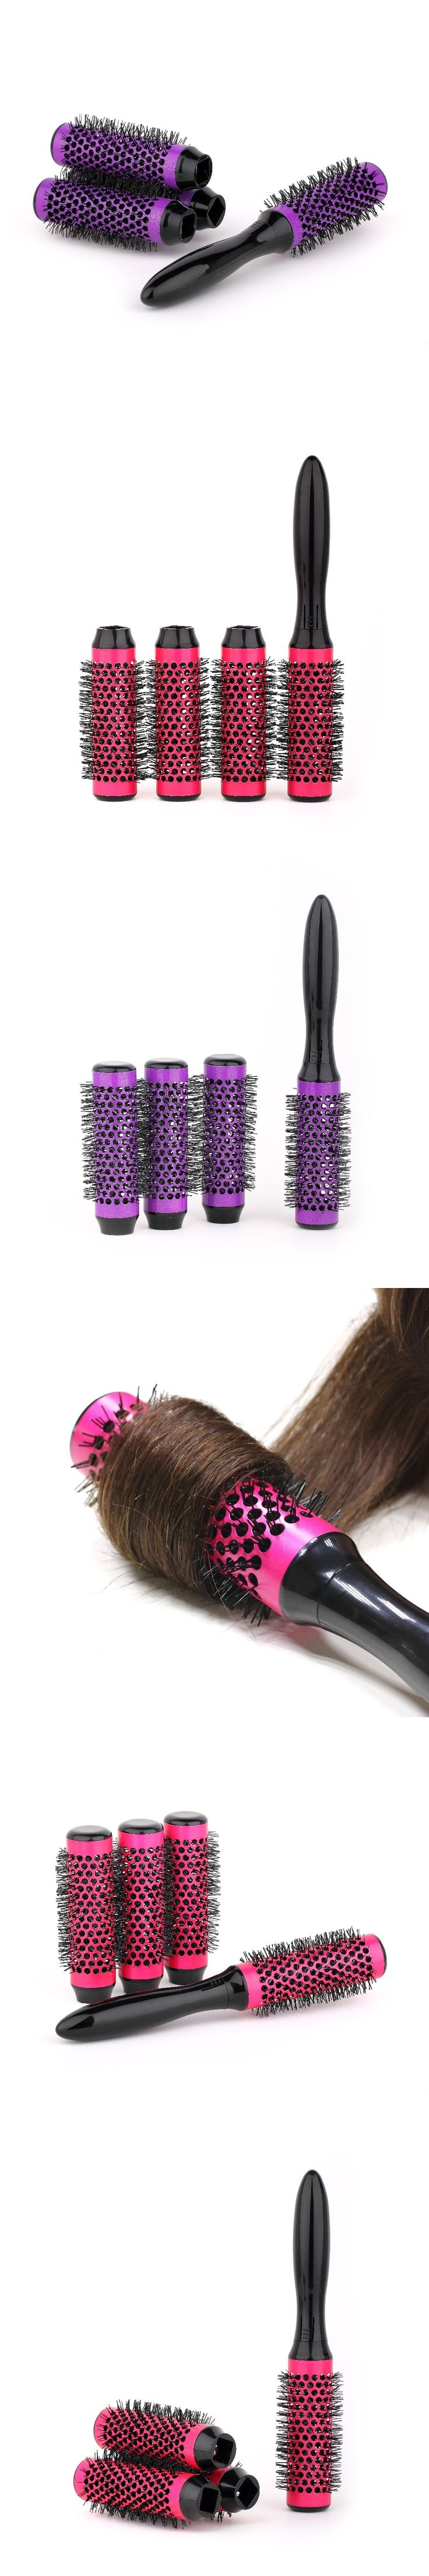 Barber Professional Salon Round Hair Brush 4 rollers Removable Curling Hair Brush Ceramic Hairdressing Salon Styling Tools